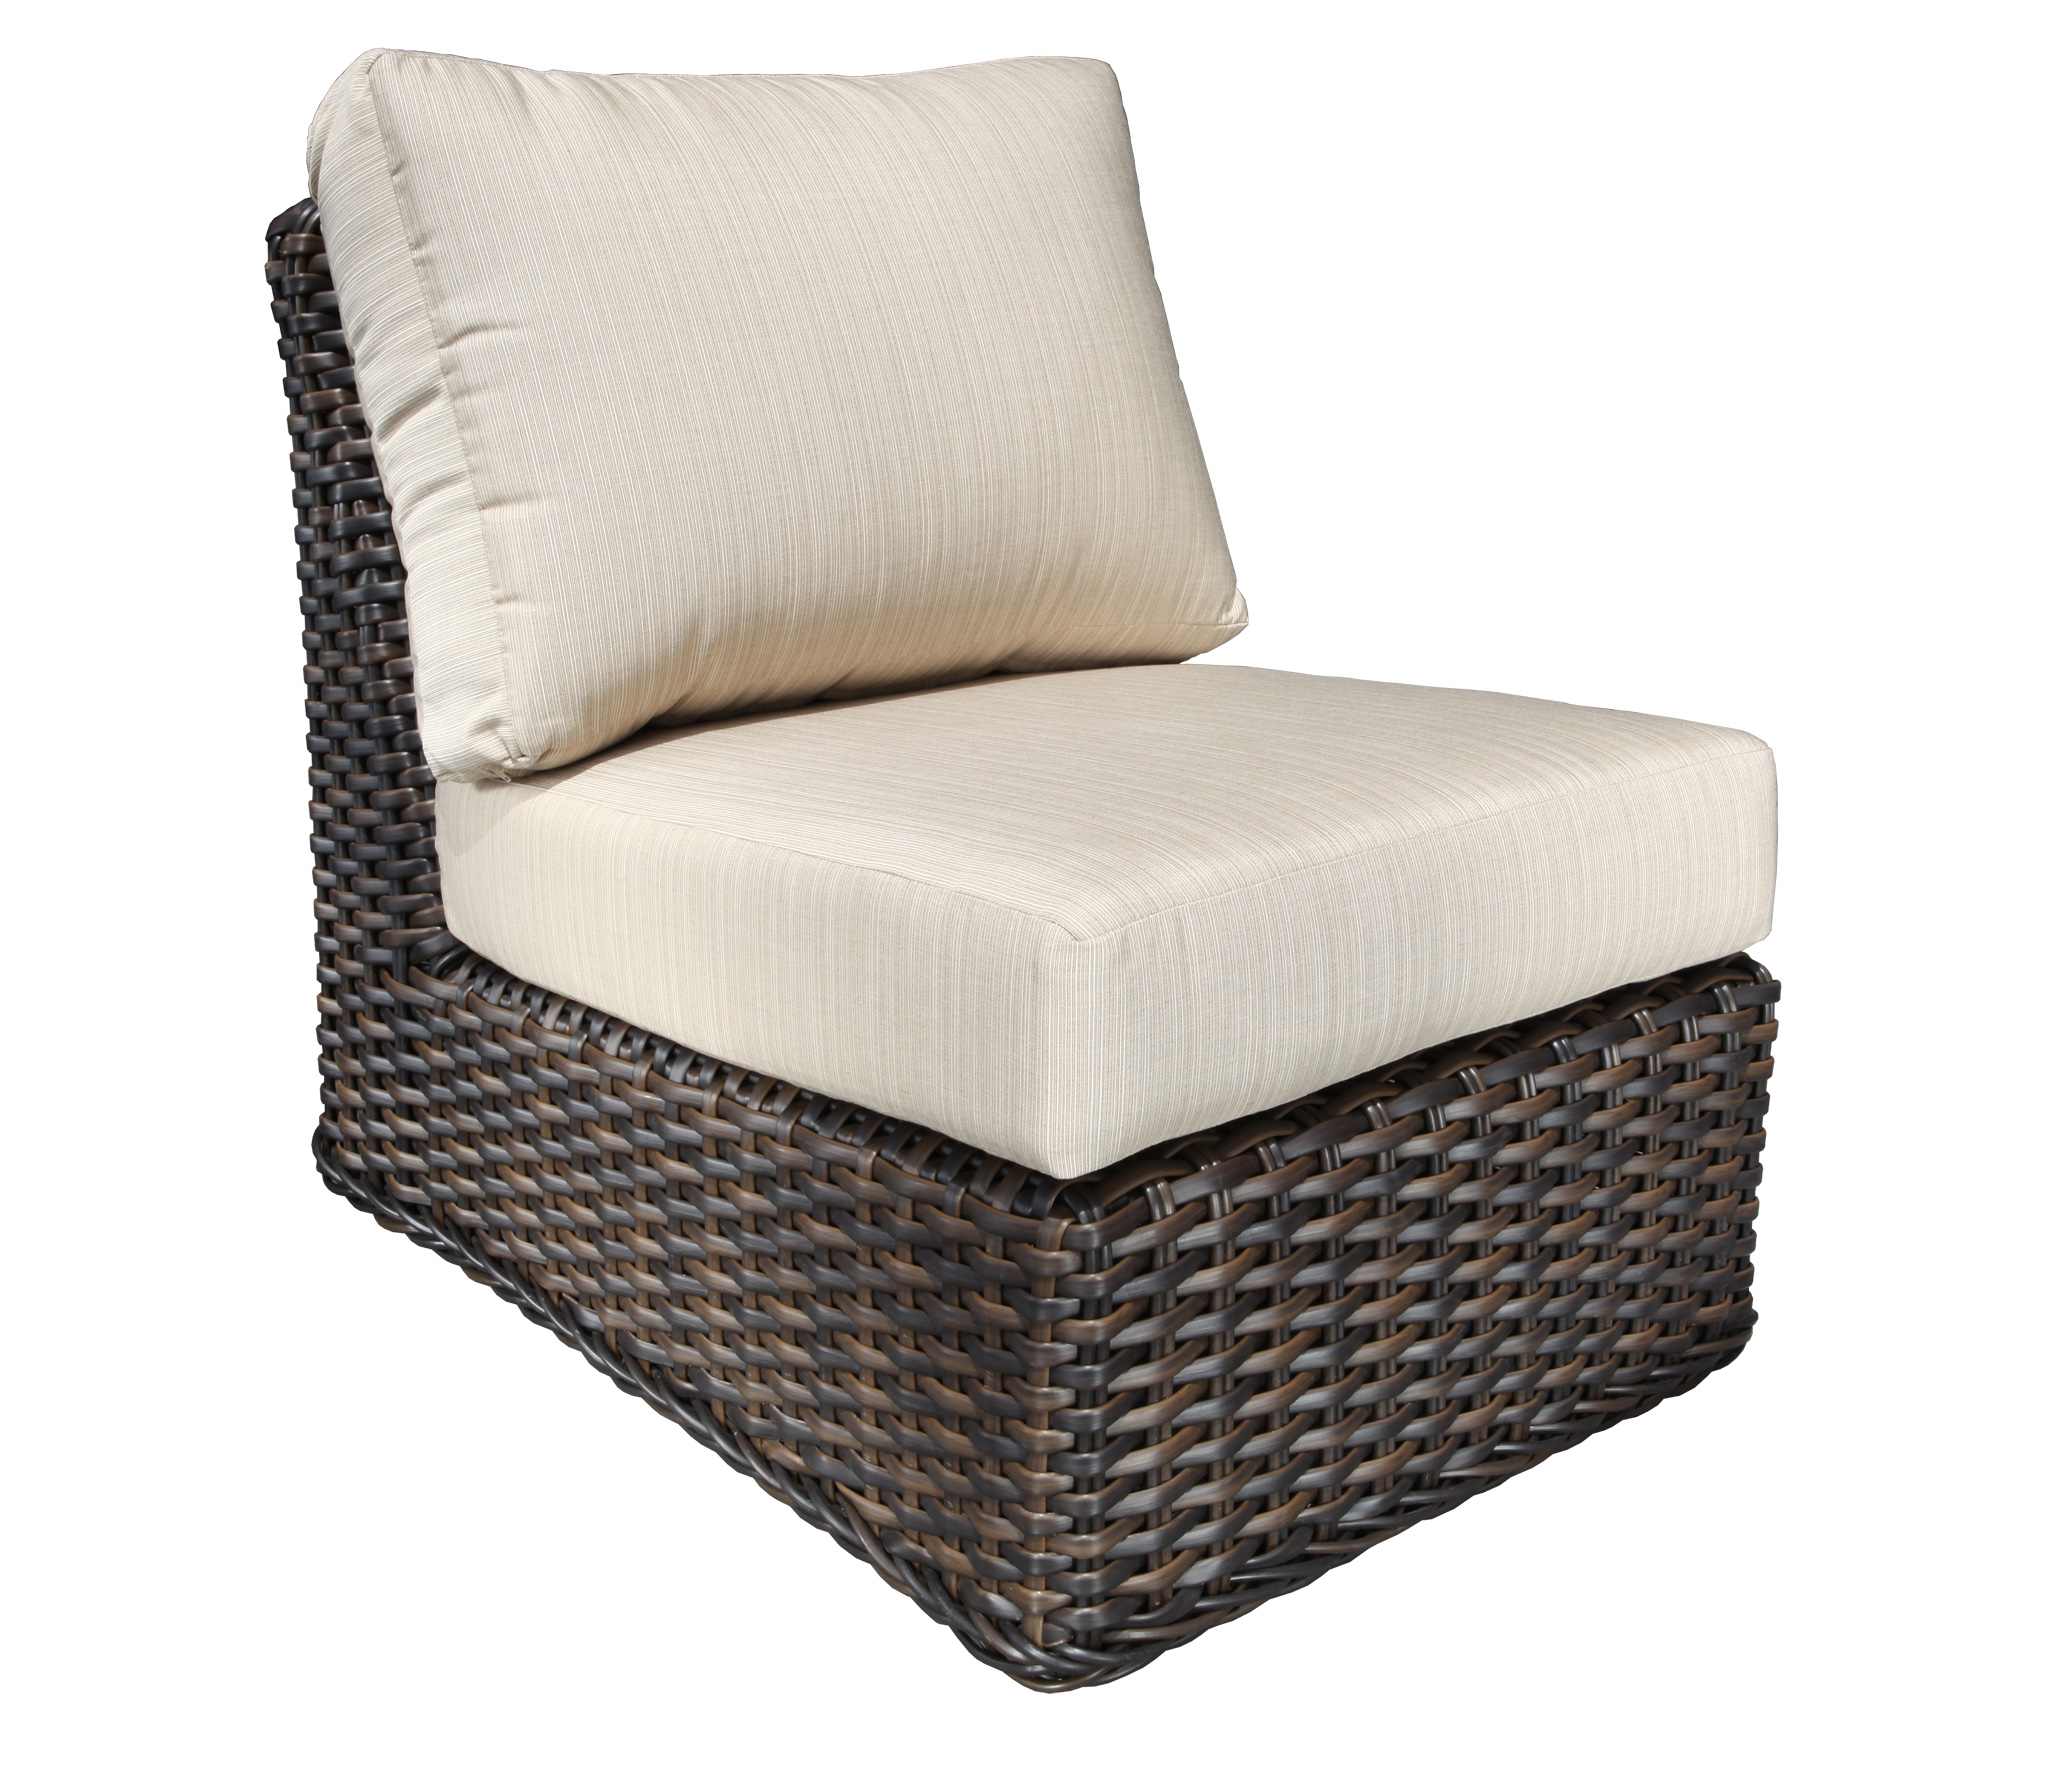 Nevada Wicker Sectional Slipper Chair Patio Furniture At